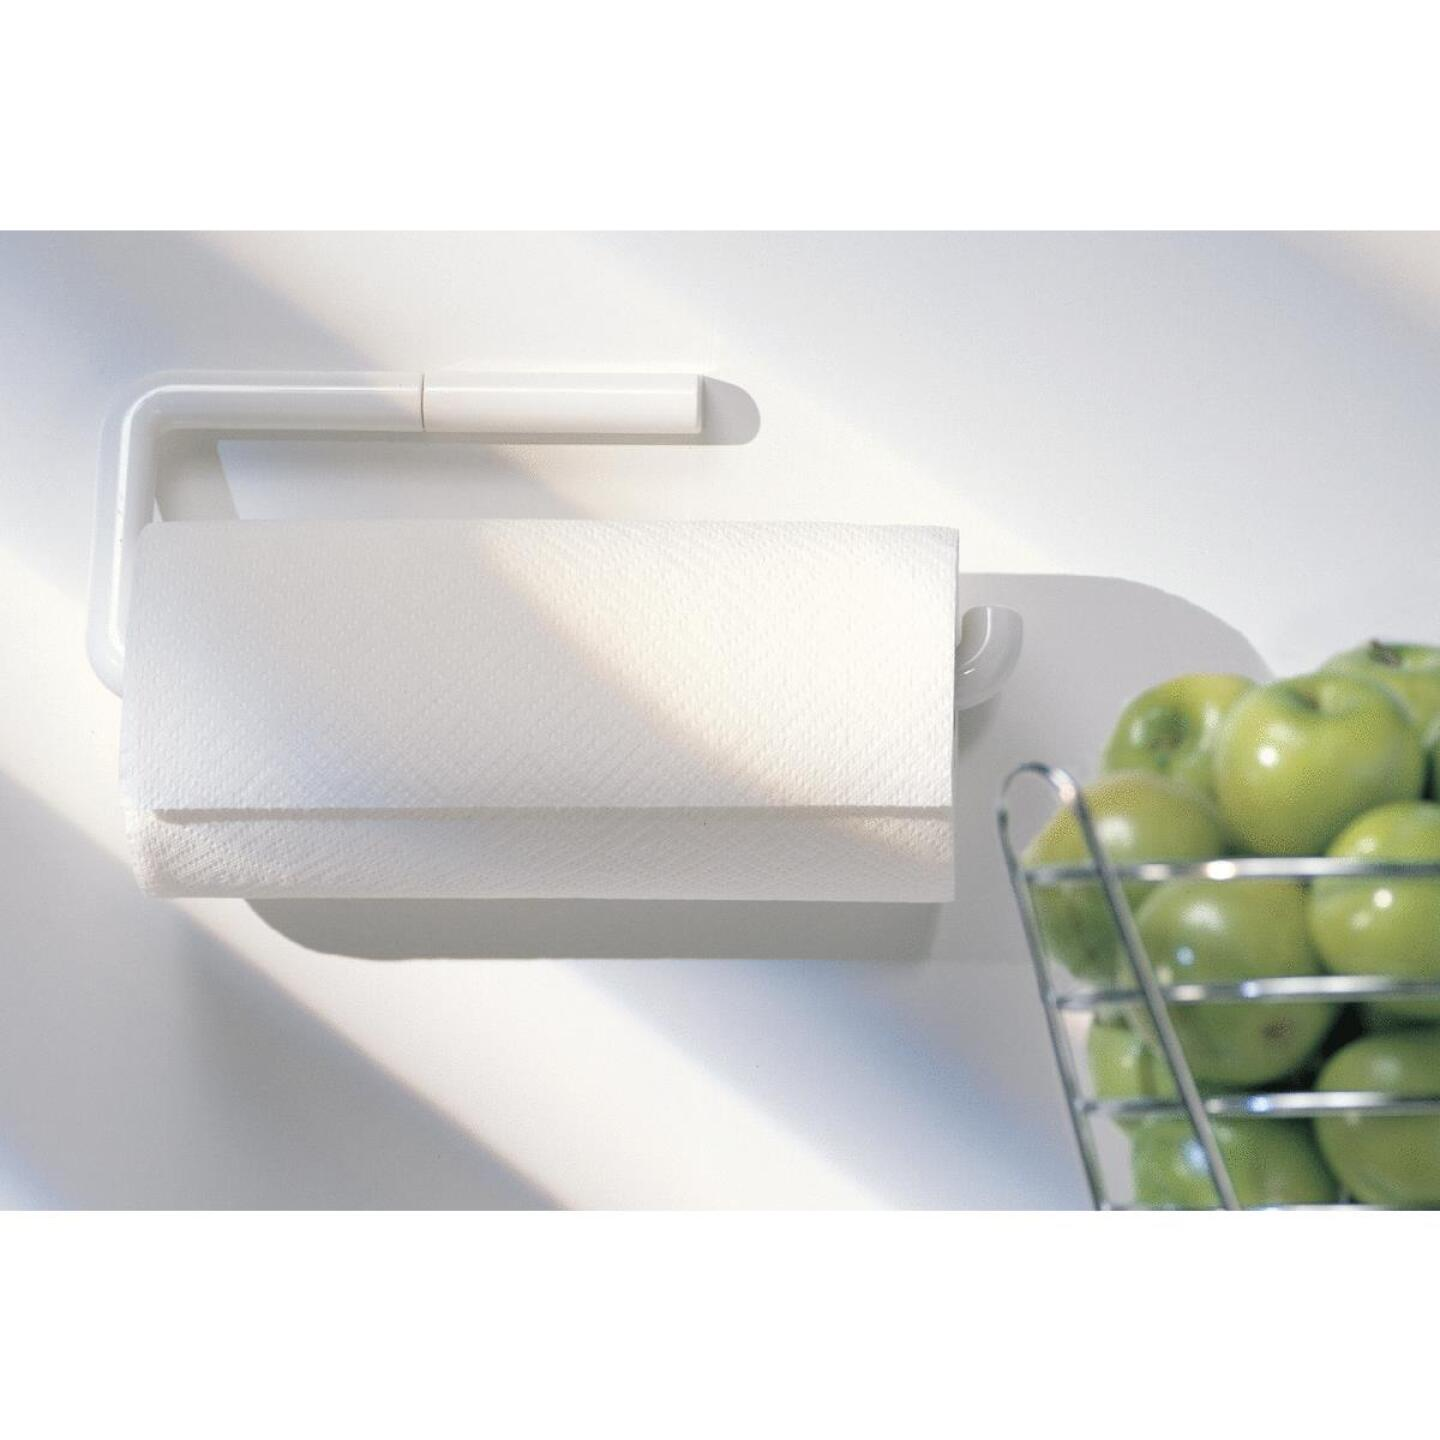 InterDesign Wall Mount Paper Towel Holder Image 2